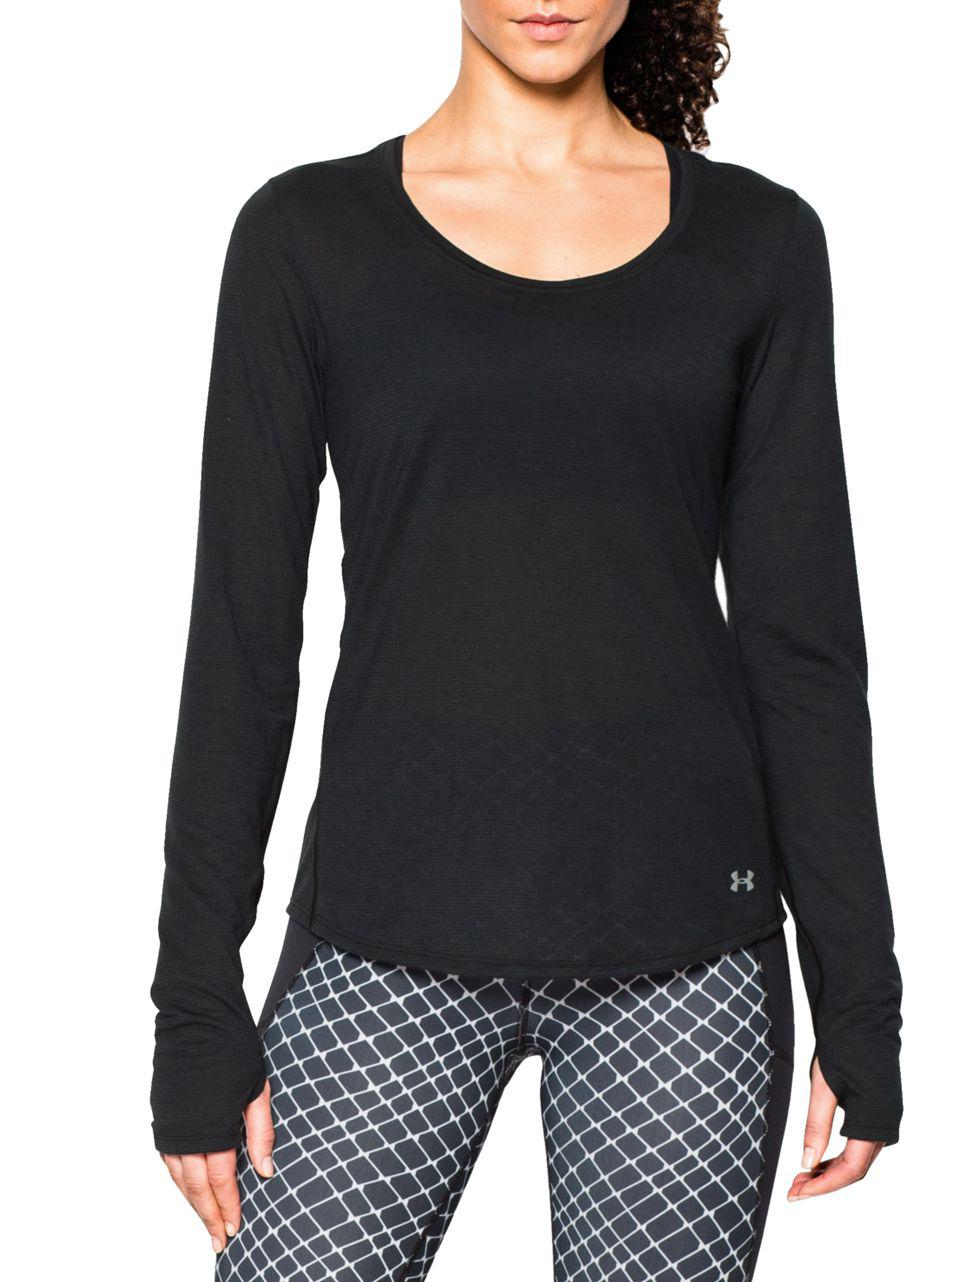 Lyst under armour charged threadborne streaker top in black for Thrilla in manila shirt under armour